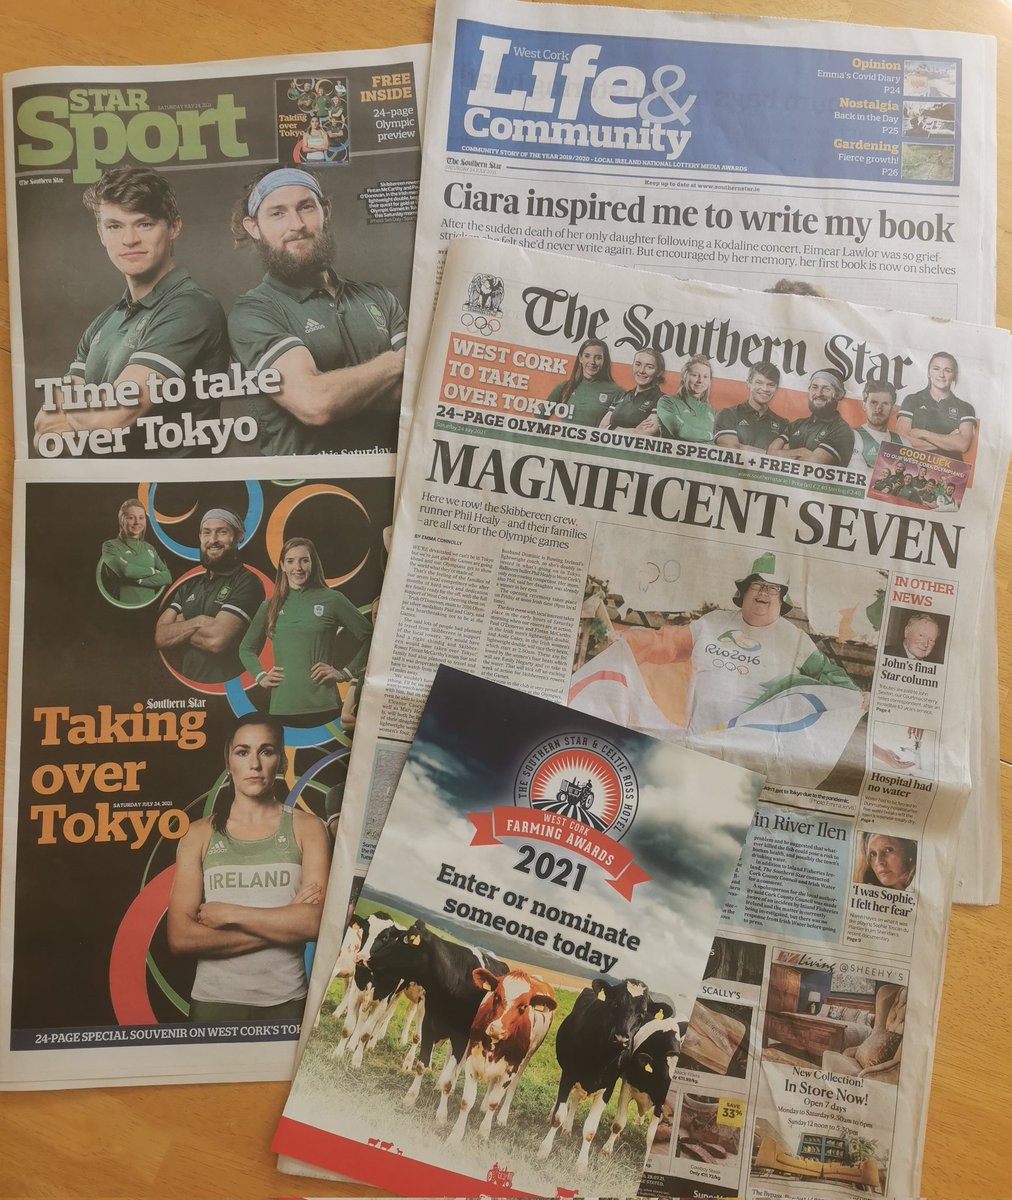 All of this for just 2.40 euro?  Get down to your nearest newsagents or local shop for this week's absolute must-buy @SouthernStarIRL #Olympics2021 special. Also available to purchase ANYWHERE in the world including #Tokyo using thr following link:  https://t.co/HFBt5EoWbH https://t.co/tiLim313c4